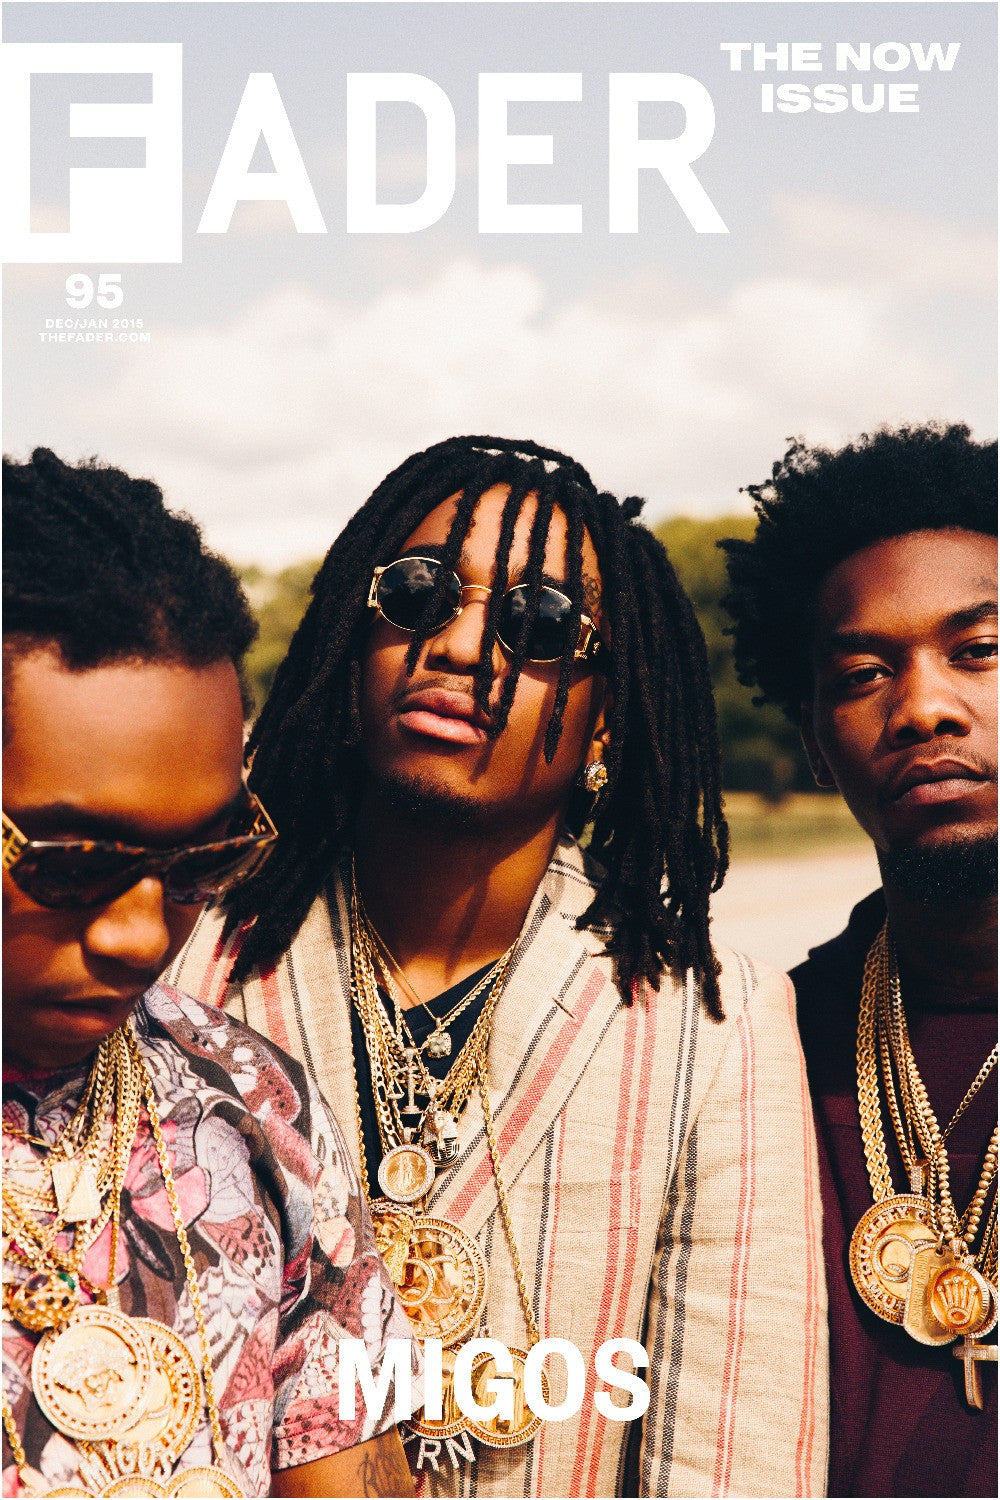 "Migos / The FADER Issue 95 Cover 20"" x 30"" Poster - The FADER"